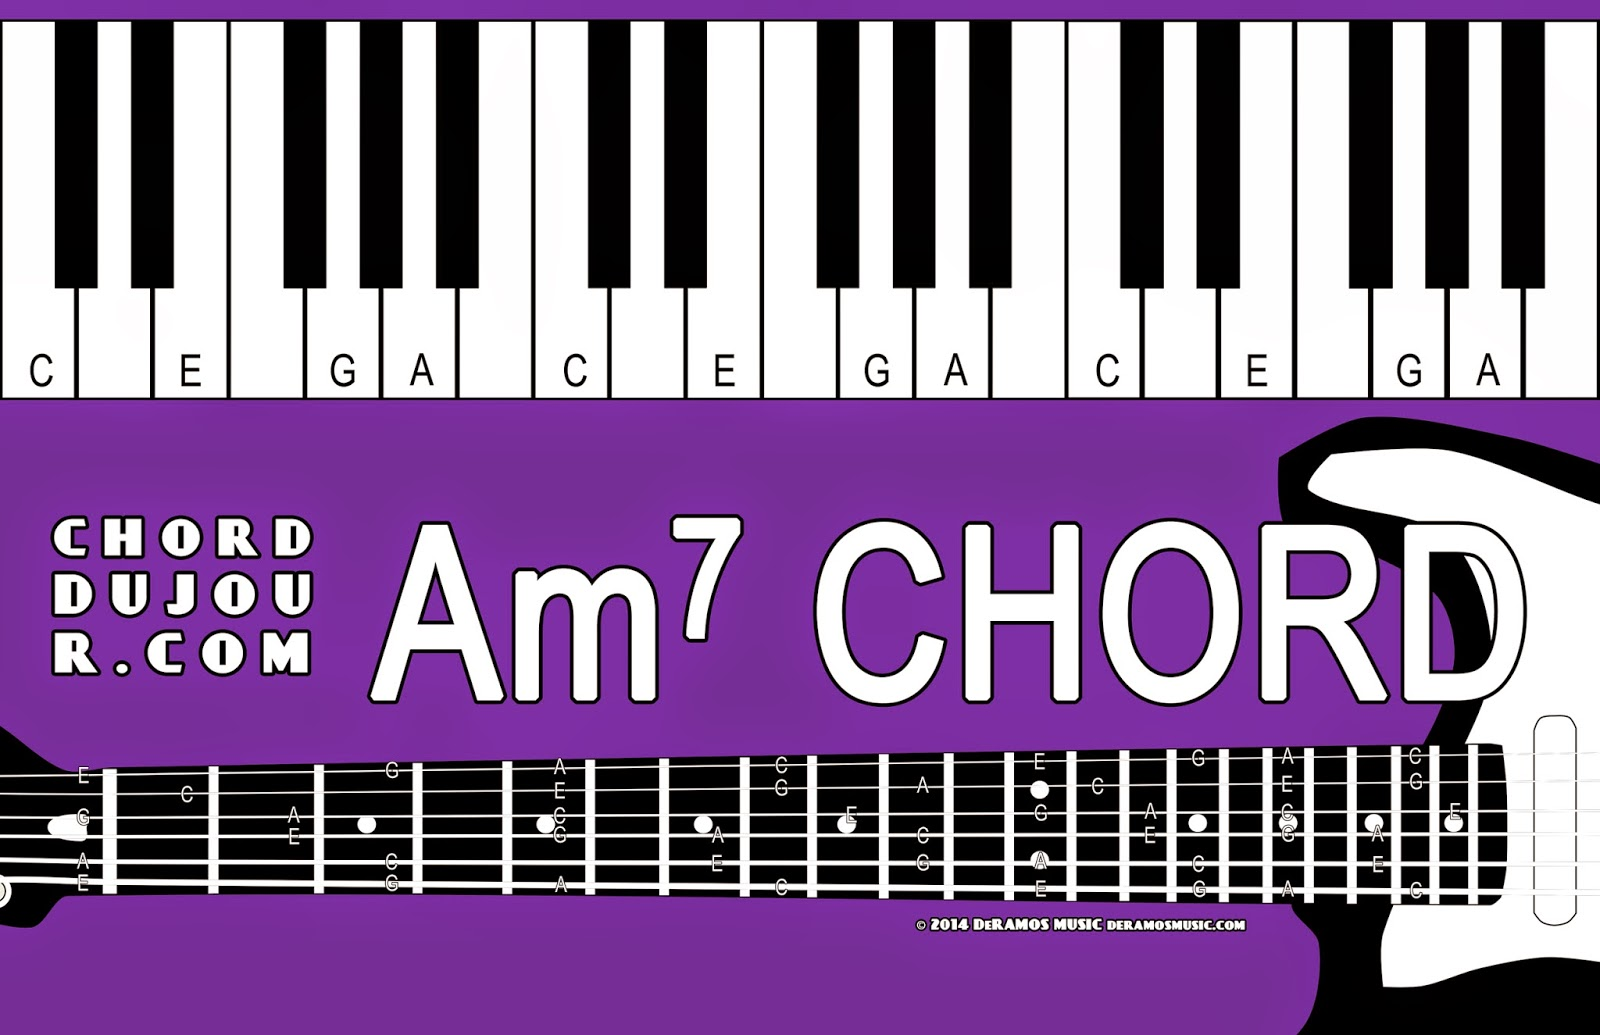 Chord du jour dictionary am7 chord am7 is an a minor triad with a minor 7th g note this chord is compatible with the a dorian a aeolian and a phrygian modes hexwebz Gallery